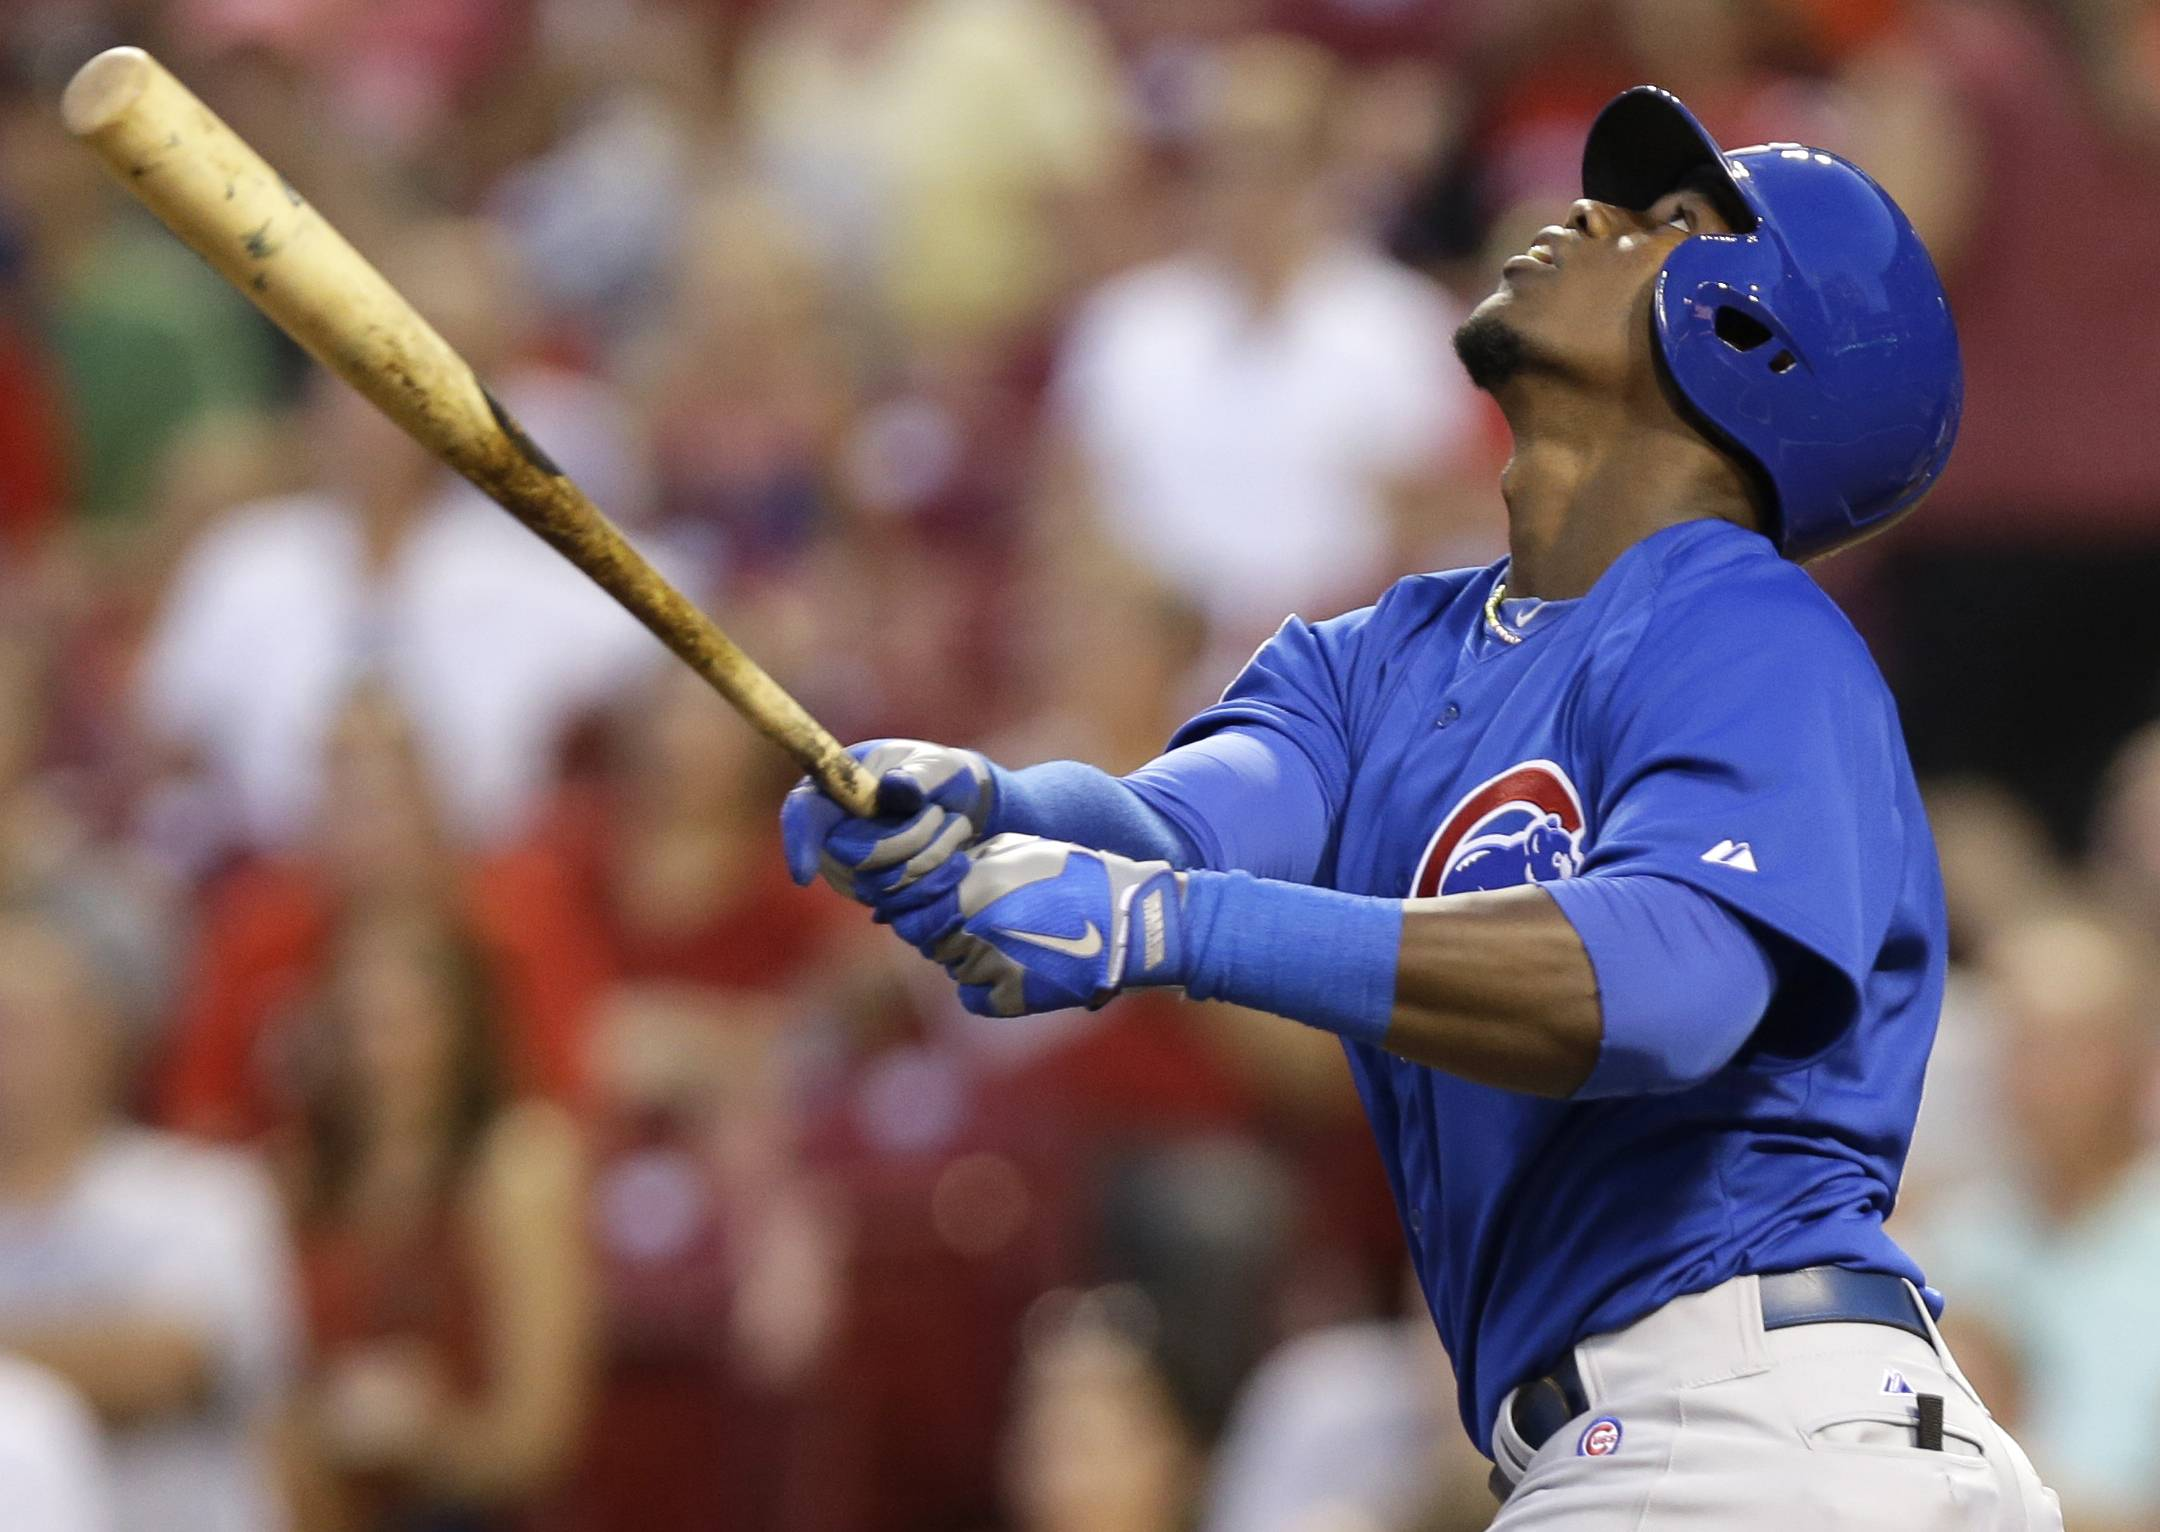 The Cubs' Jorge Soler hit a first-at-bat home run and an RBI single, but the Cubs still lost to the Reds 7-5 Wednesday in Cincinnati.